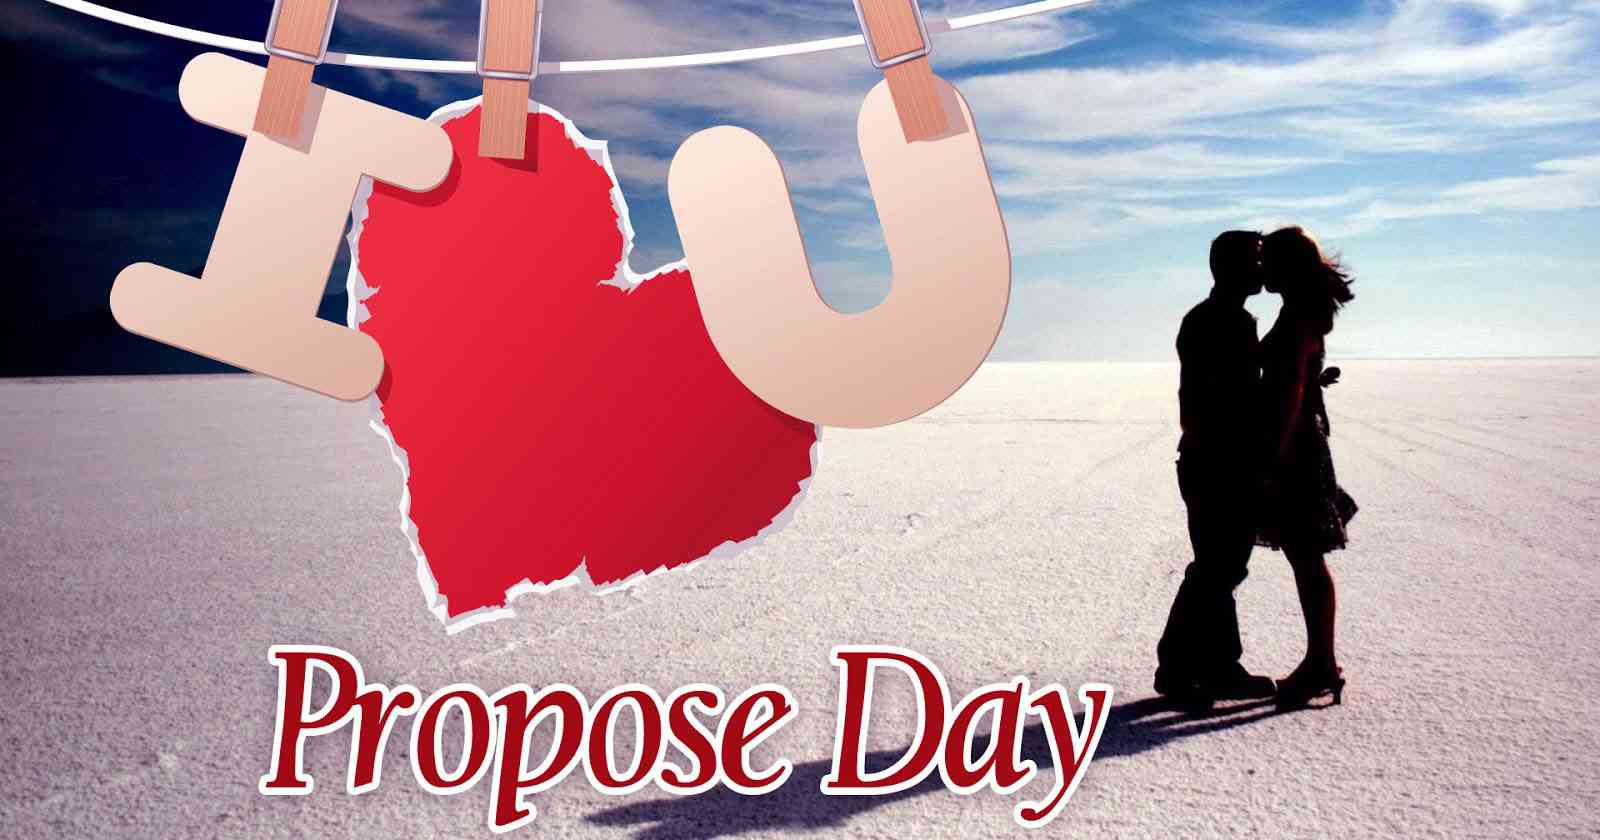 Propose Day 2017 Images HD Photos Amp Wallpapers For